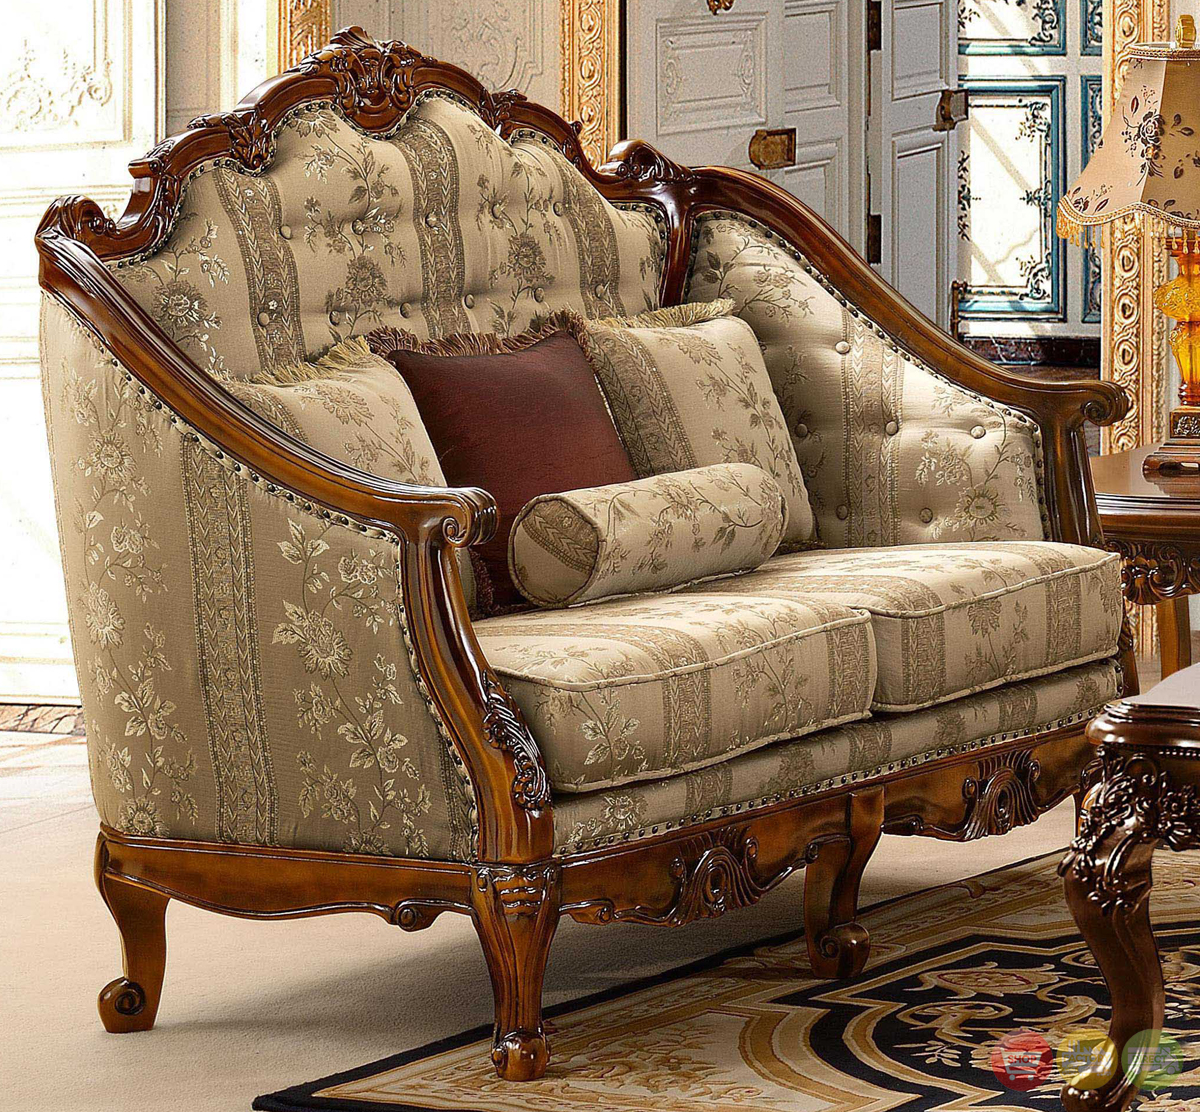 formal sitting room chairs wicker patio lounge antique style luxury living furniture set hd 953